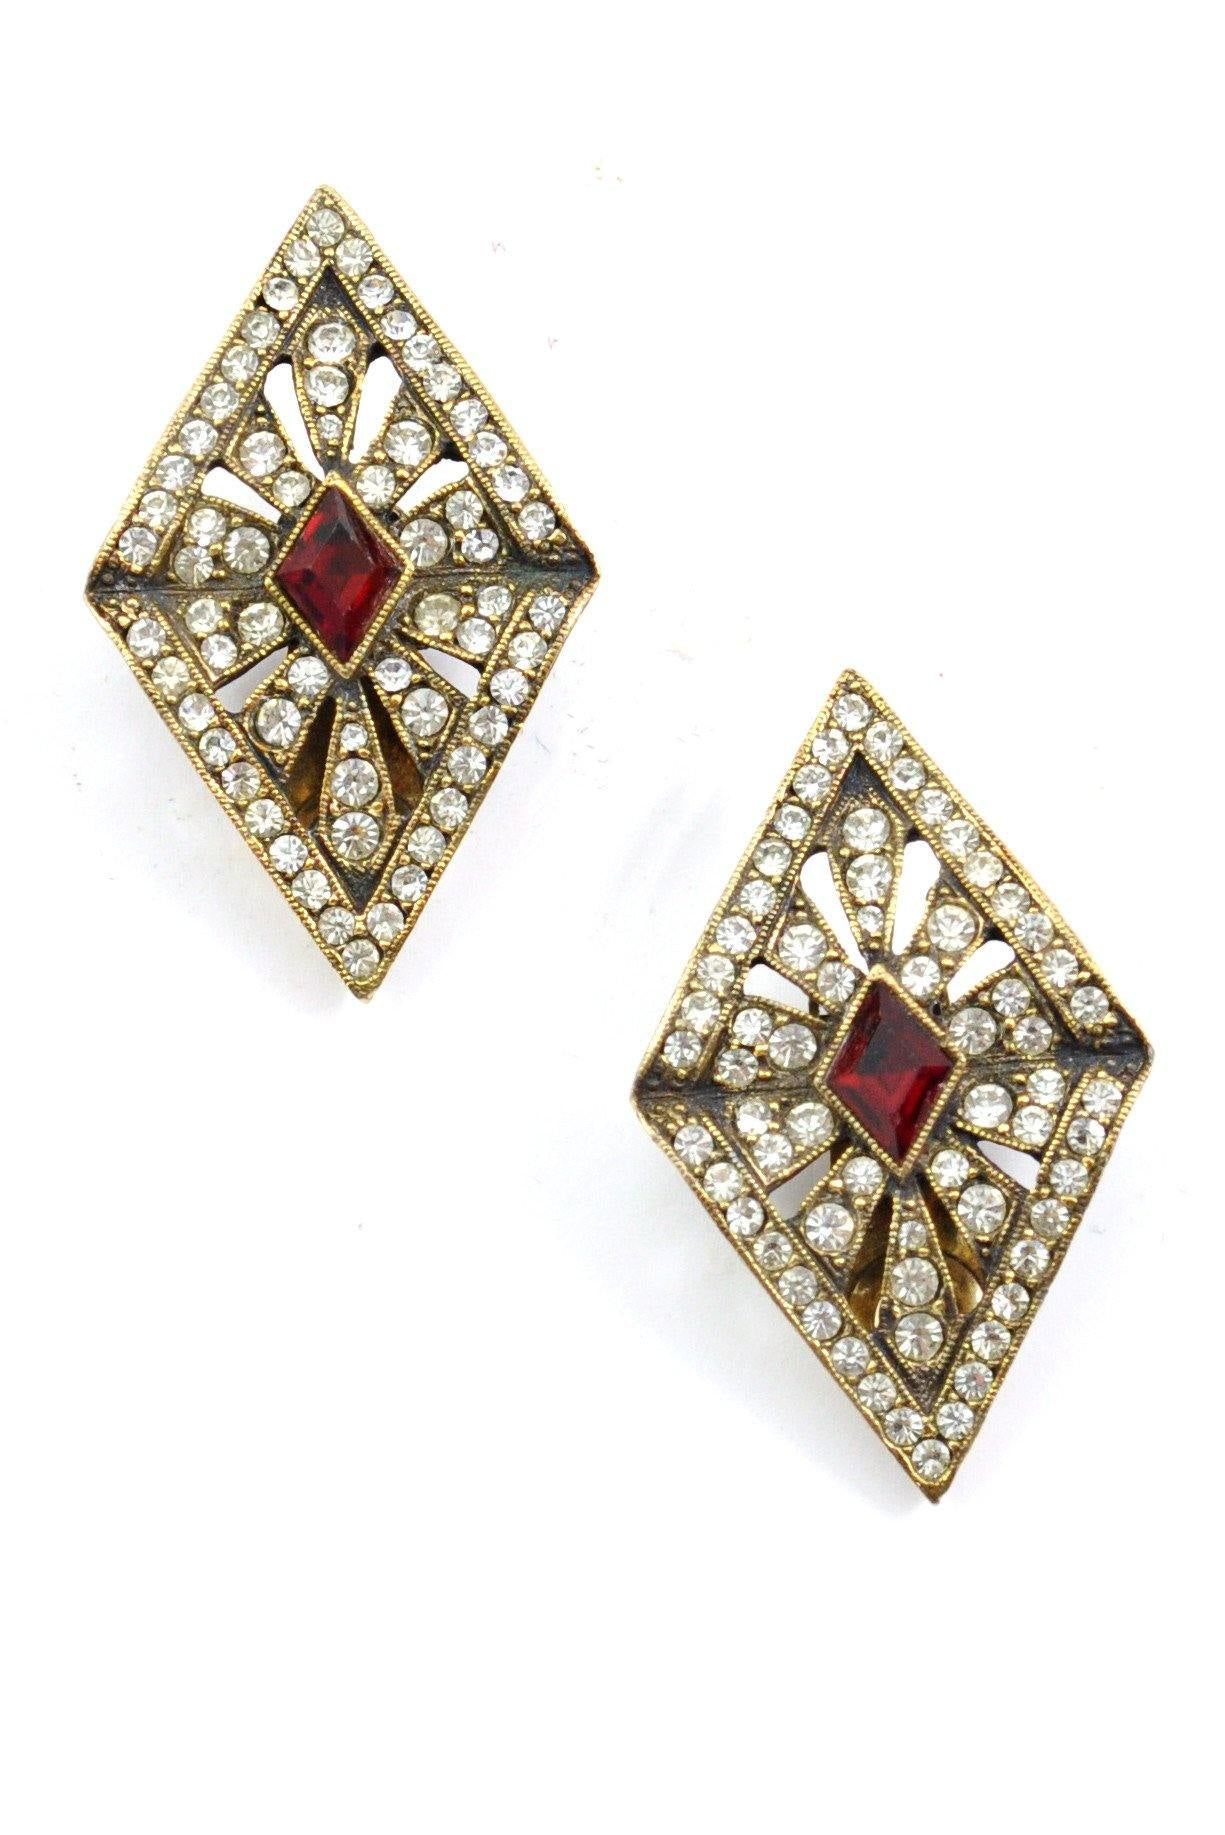 60s__Les Bernard__Statement Rhinestone Clip-On Earrings